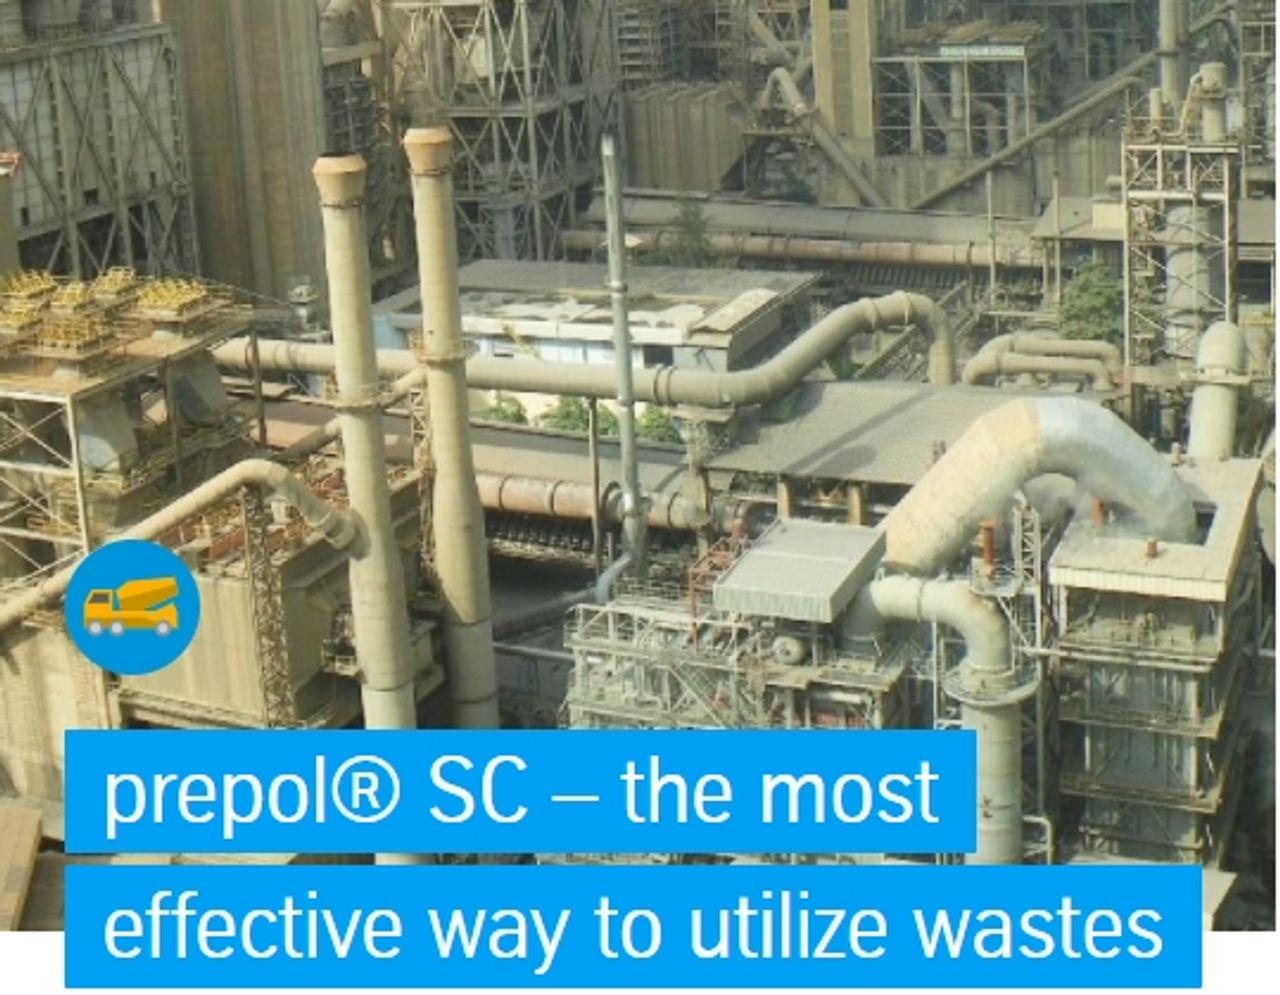 In 2025, according to UN figures, more than 8.1 billion people will live on the earth and produce around six million tons of waste a day. In the future, resources must be used more efficiently and industrial goods must be produced in a more environmentally friendly way. The cement industry provides one example of how this could happen: Through the use of the prepol® SC combustion chamber developed by thyssenkrupp, coal, gas and oil as primary energy sources can be replaced 100 percent by alternative fuels - a sustainable contribution to conserving resources and reducing CO2 emissions.